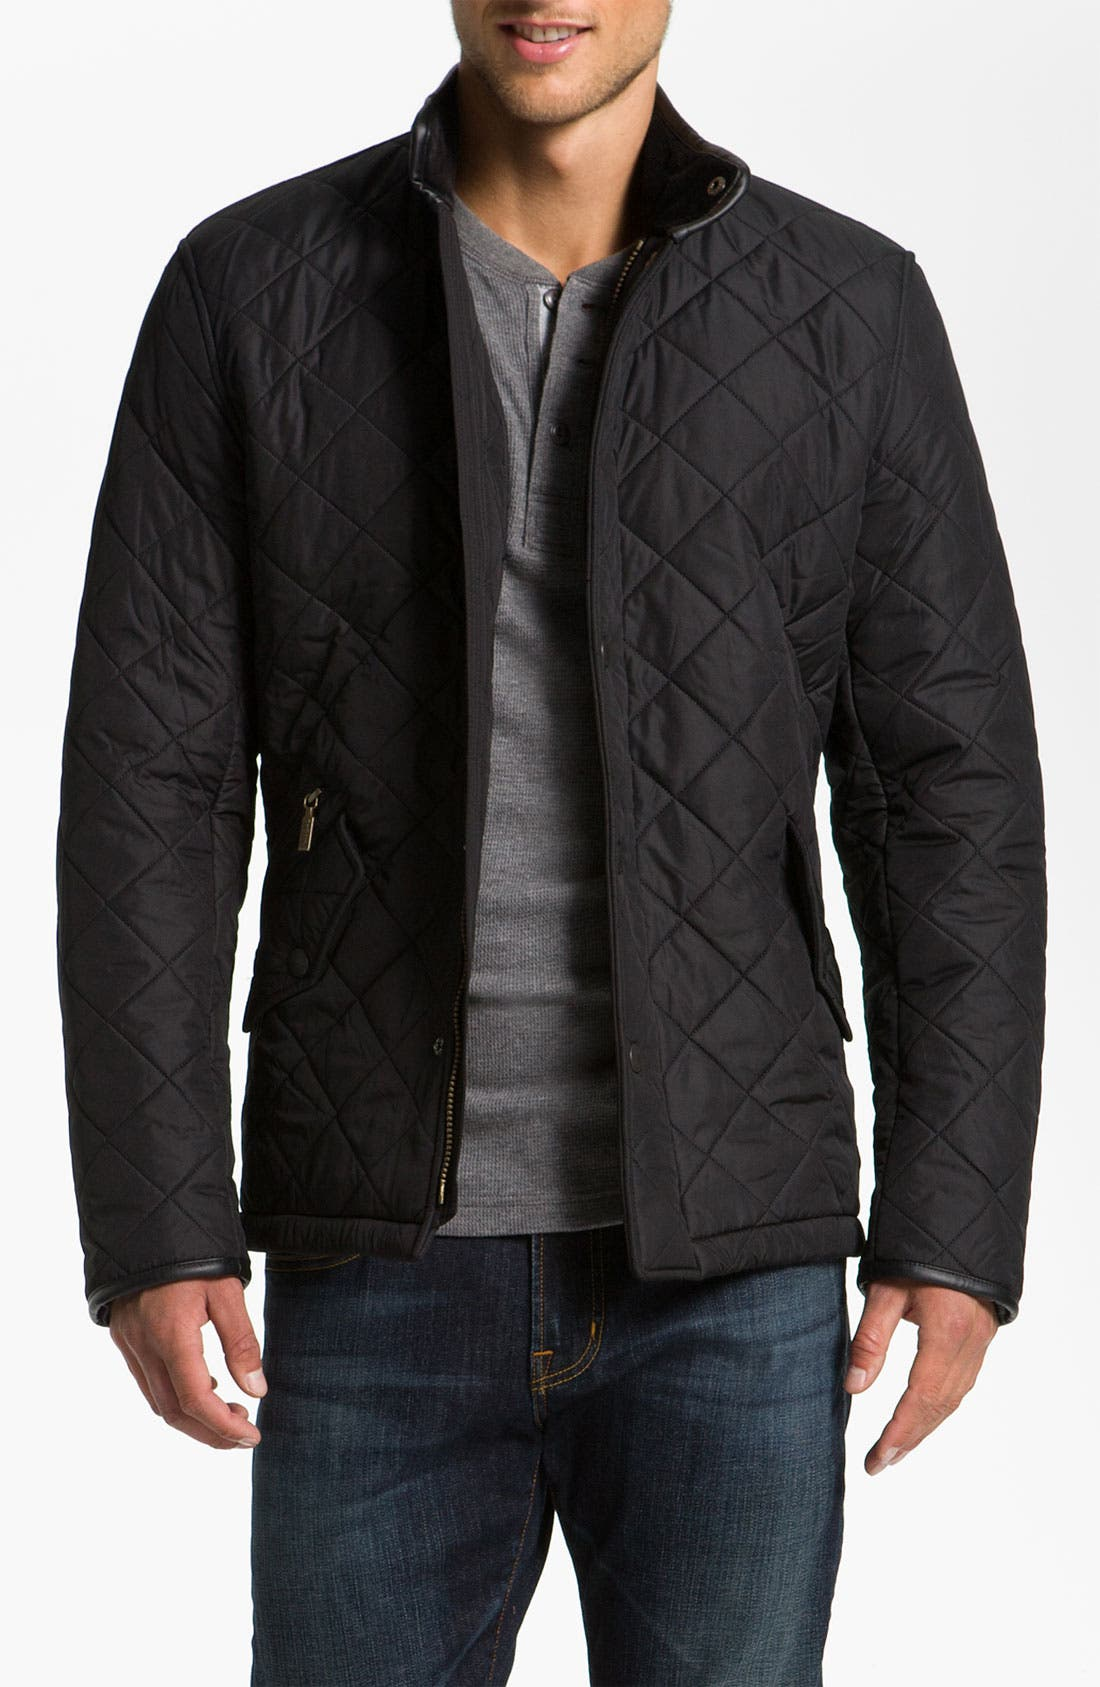 BARBOUR, 'Powell' Regular Fit Quilted Jacket, Main thumbnail 1, color, BLACK